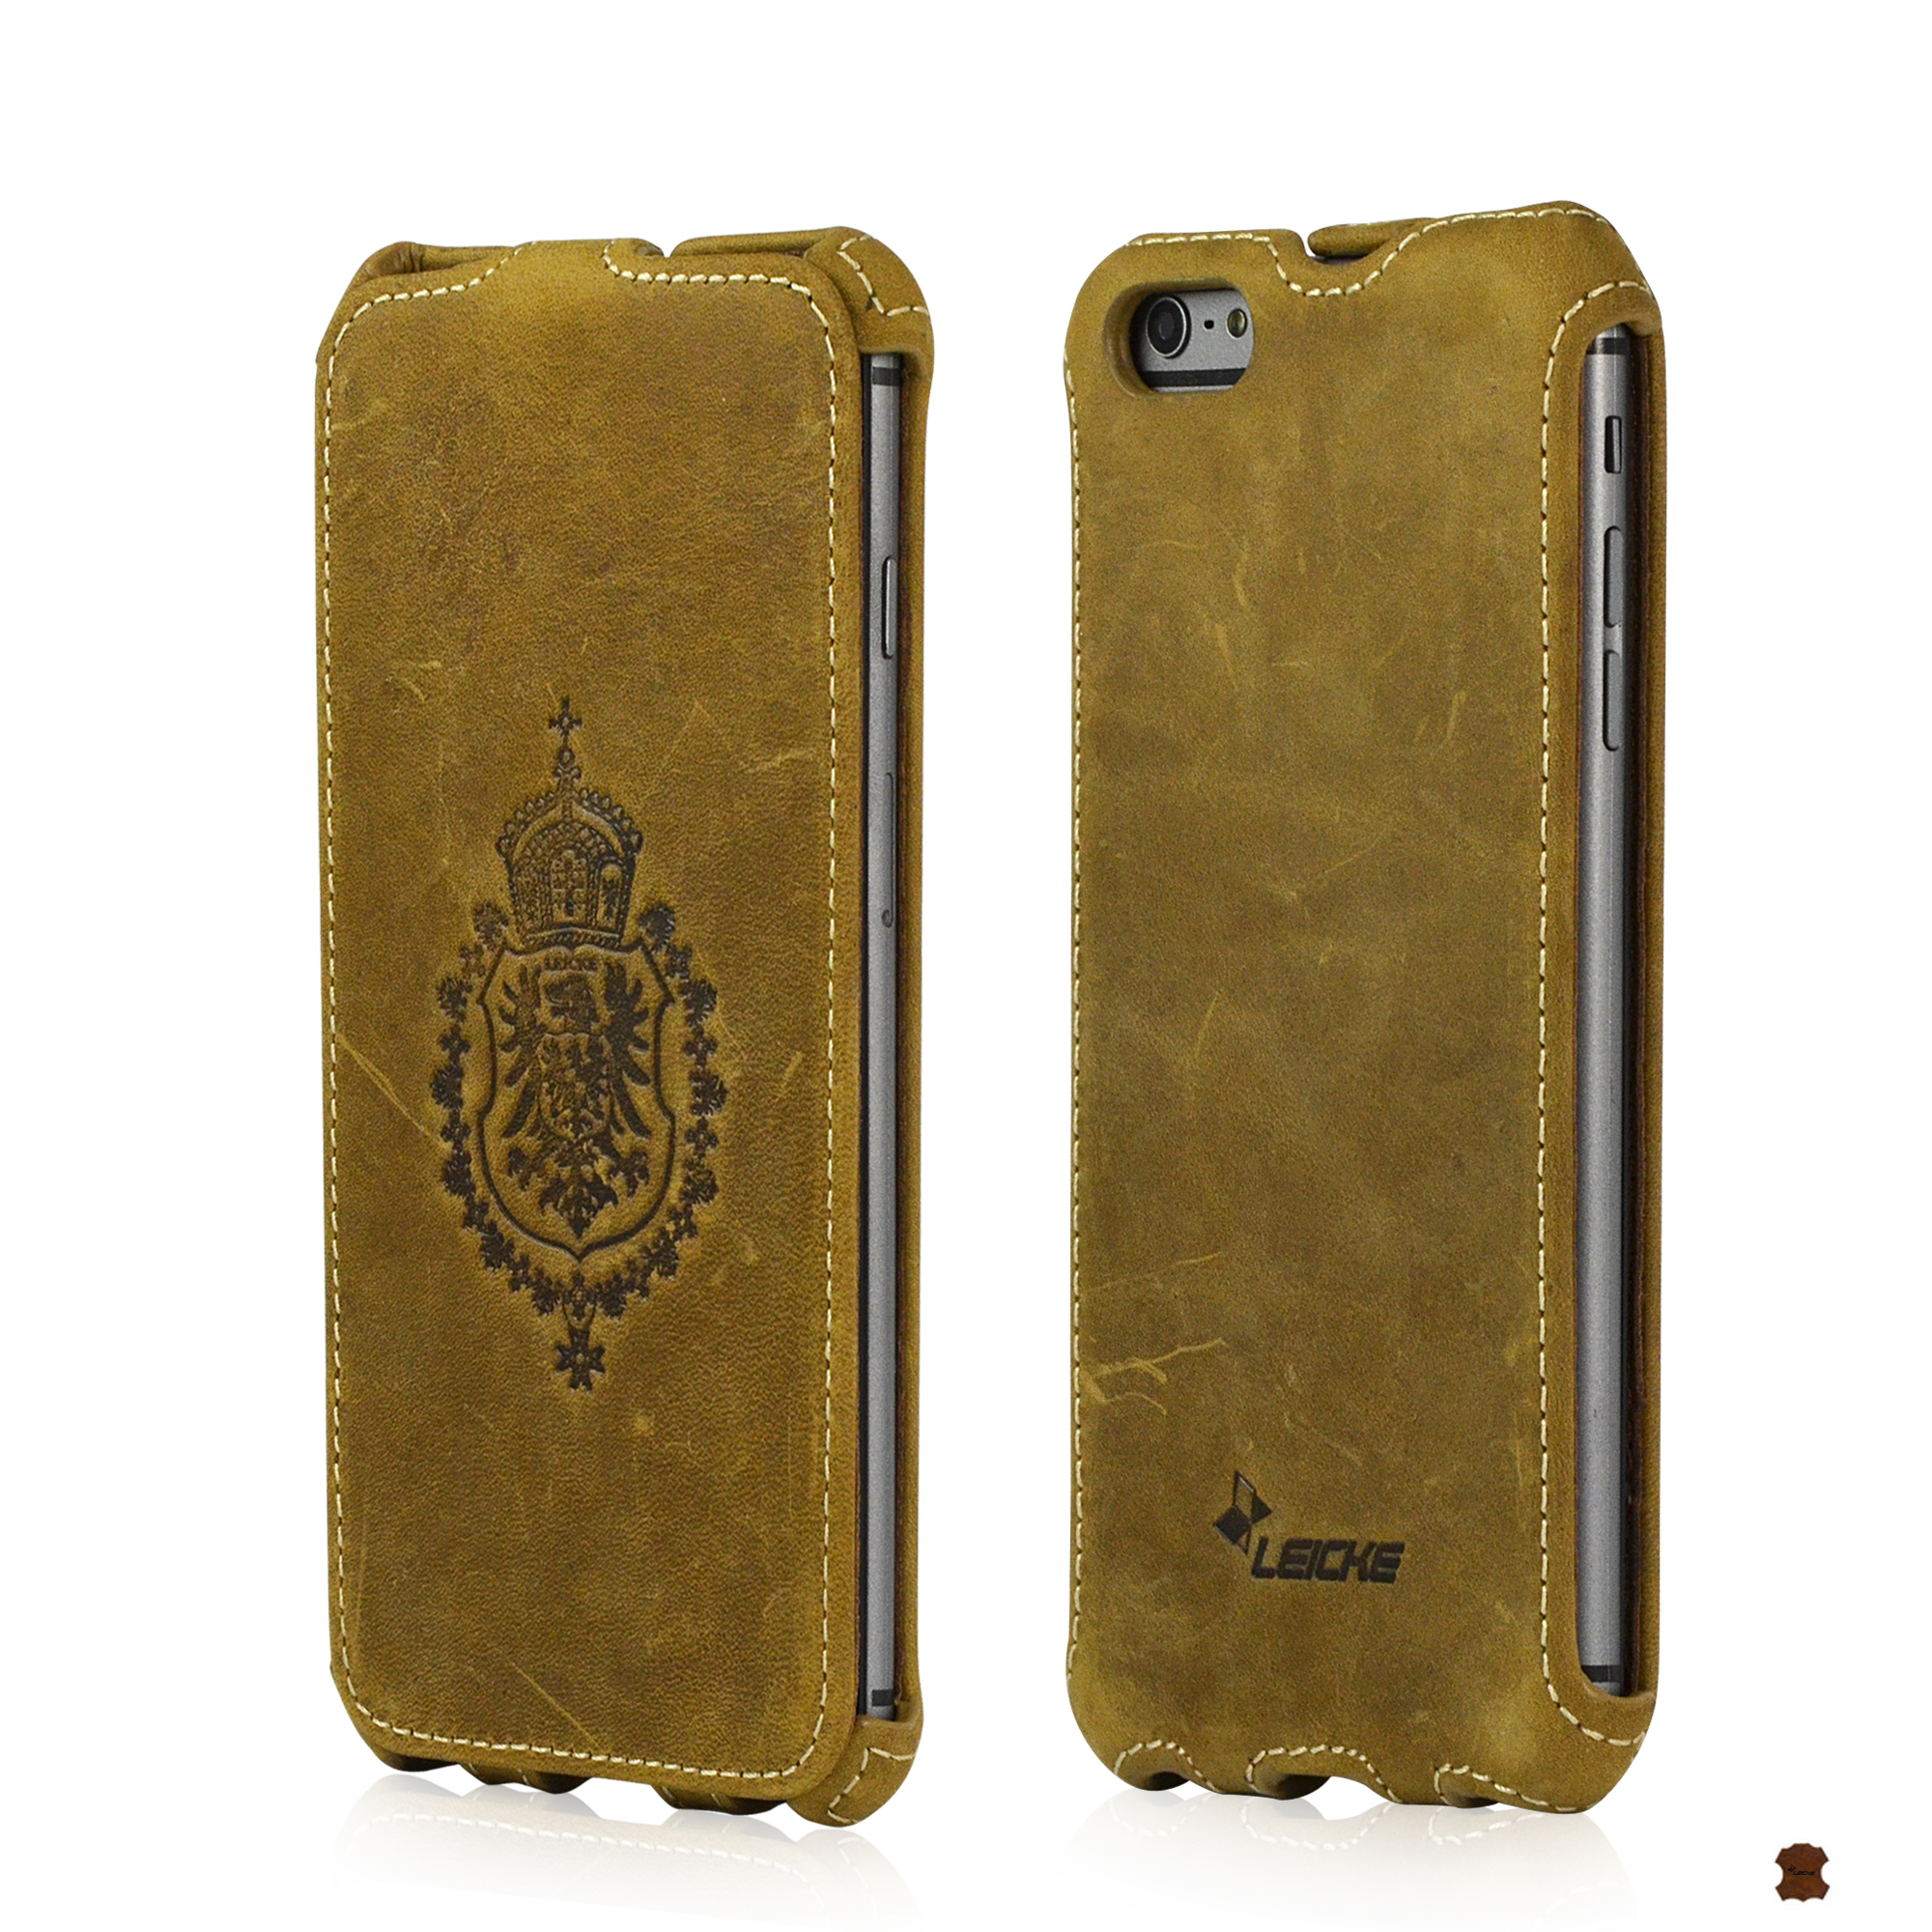 elegante custodia morbida in pelle per iphone 6plus